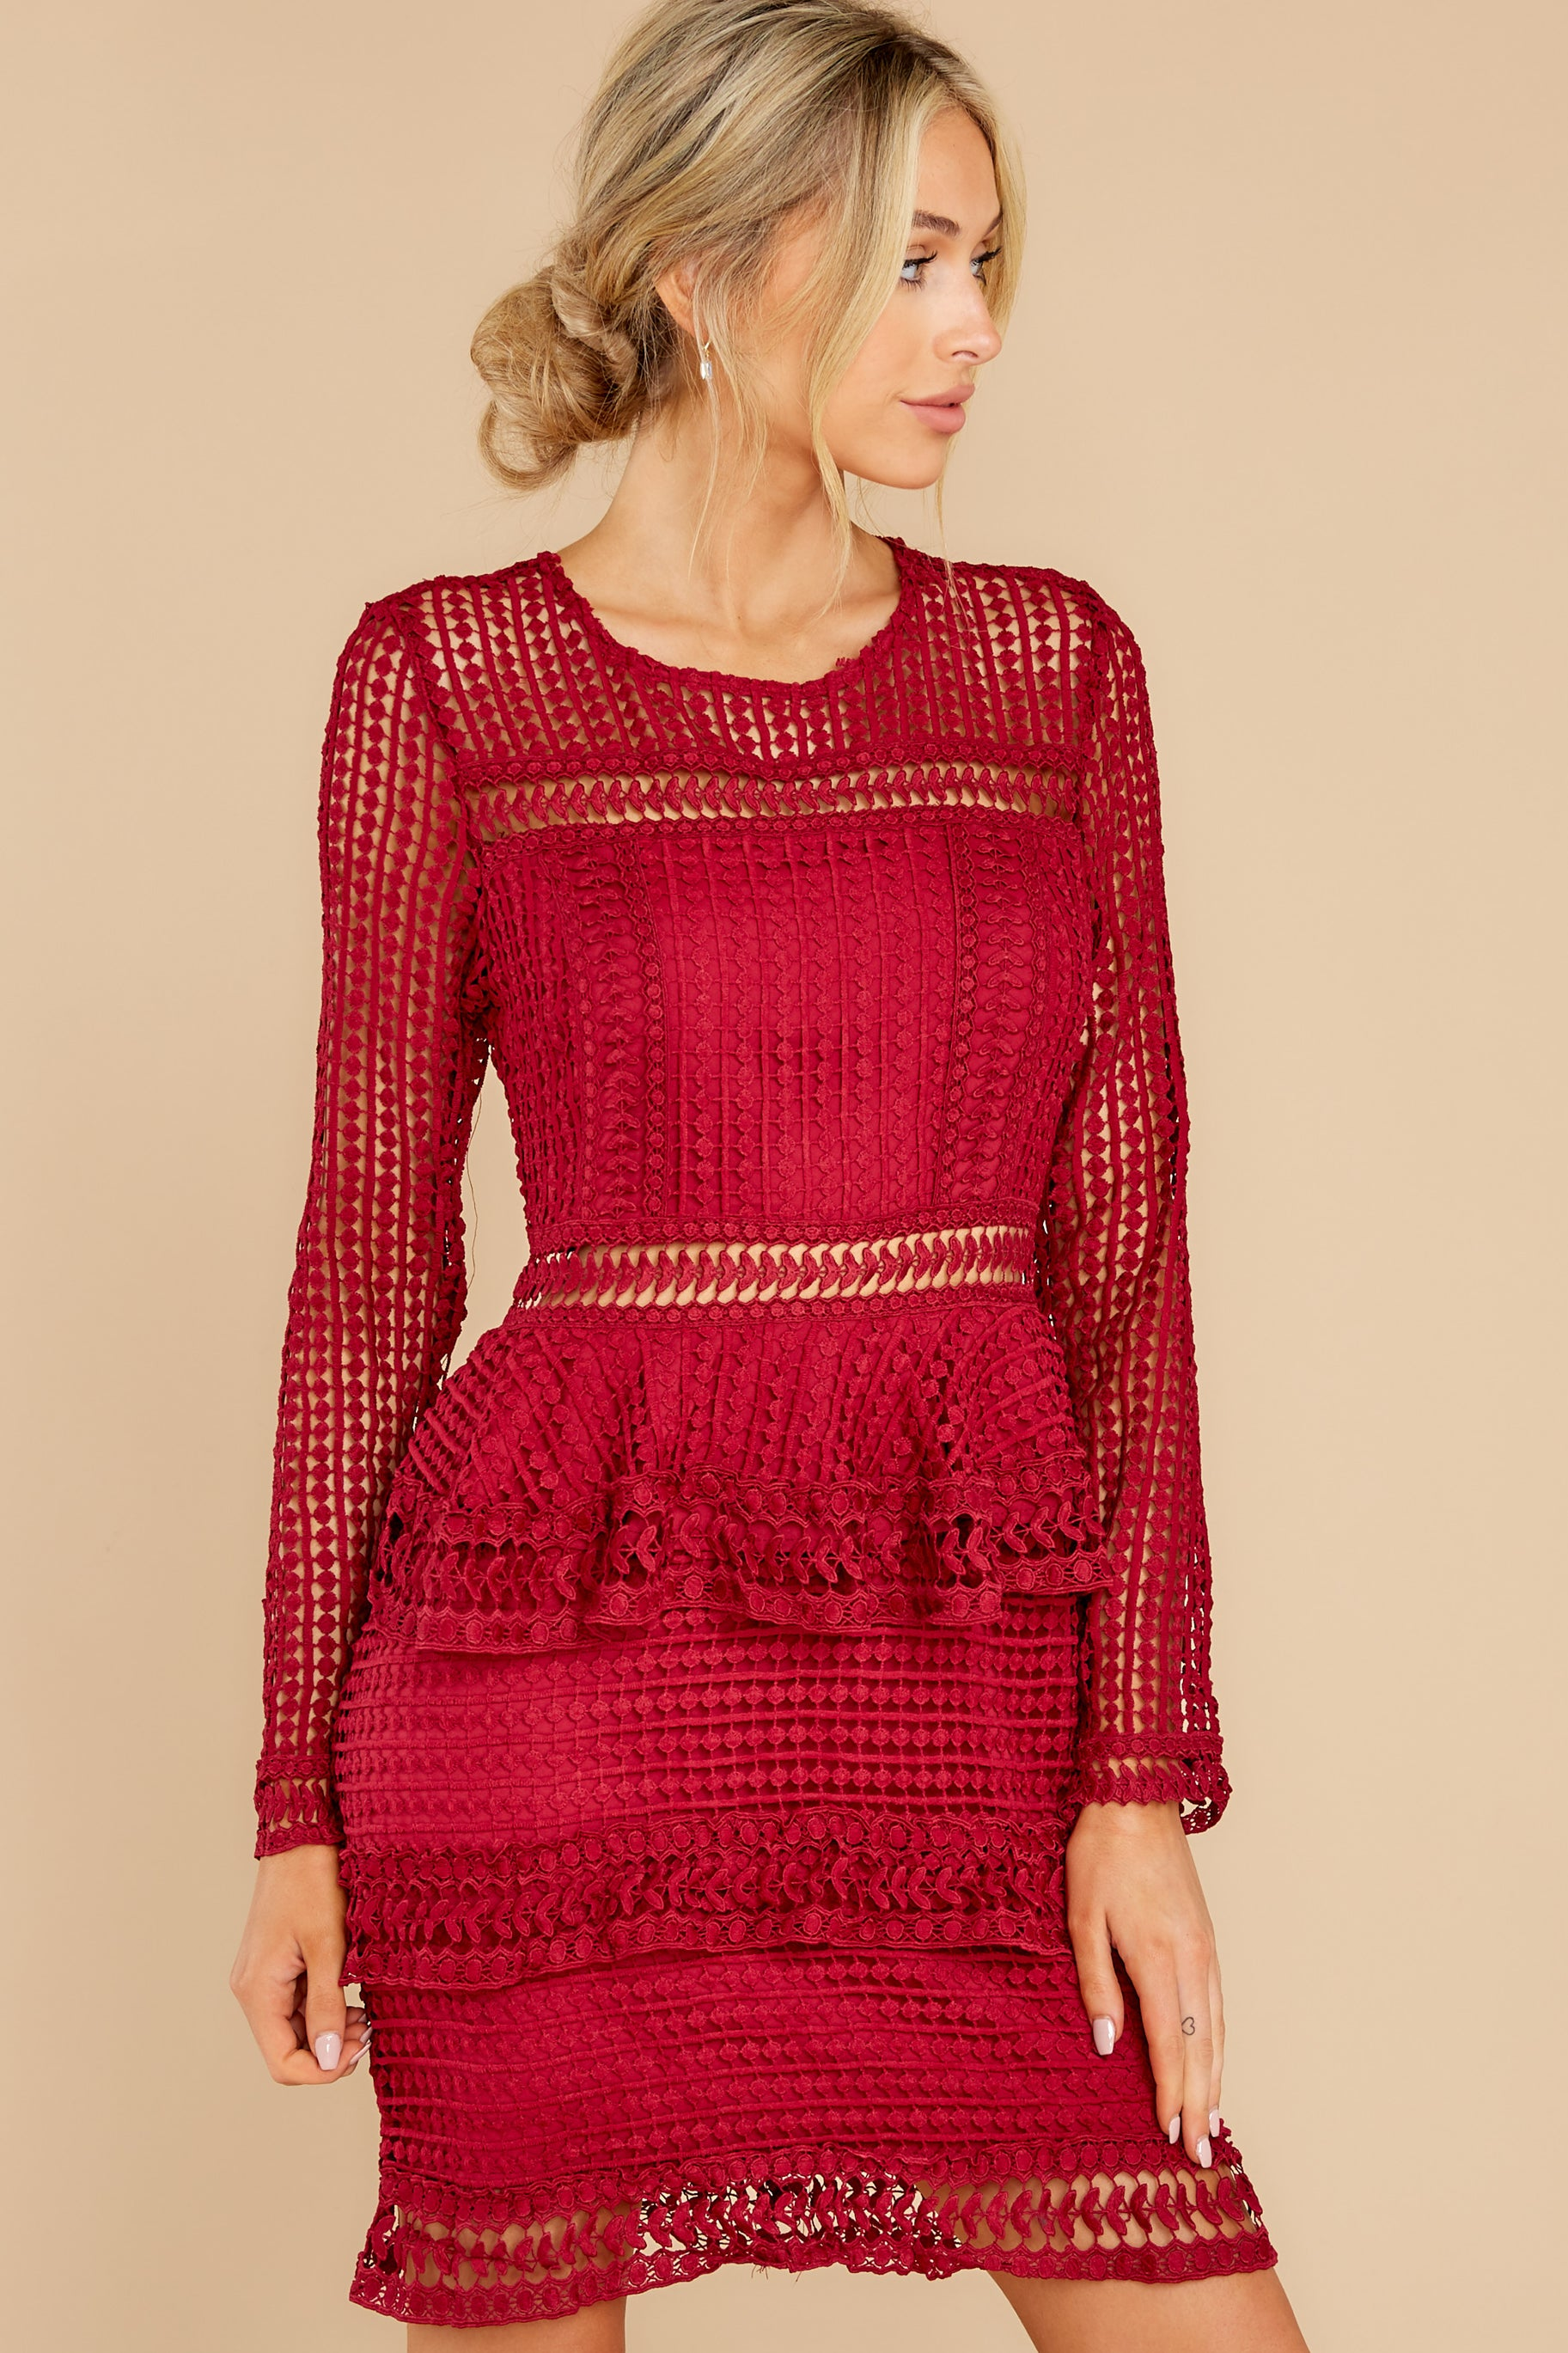 5 Out For Love Burgundy Lace Dress at reddress.com